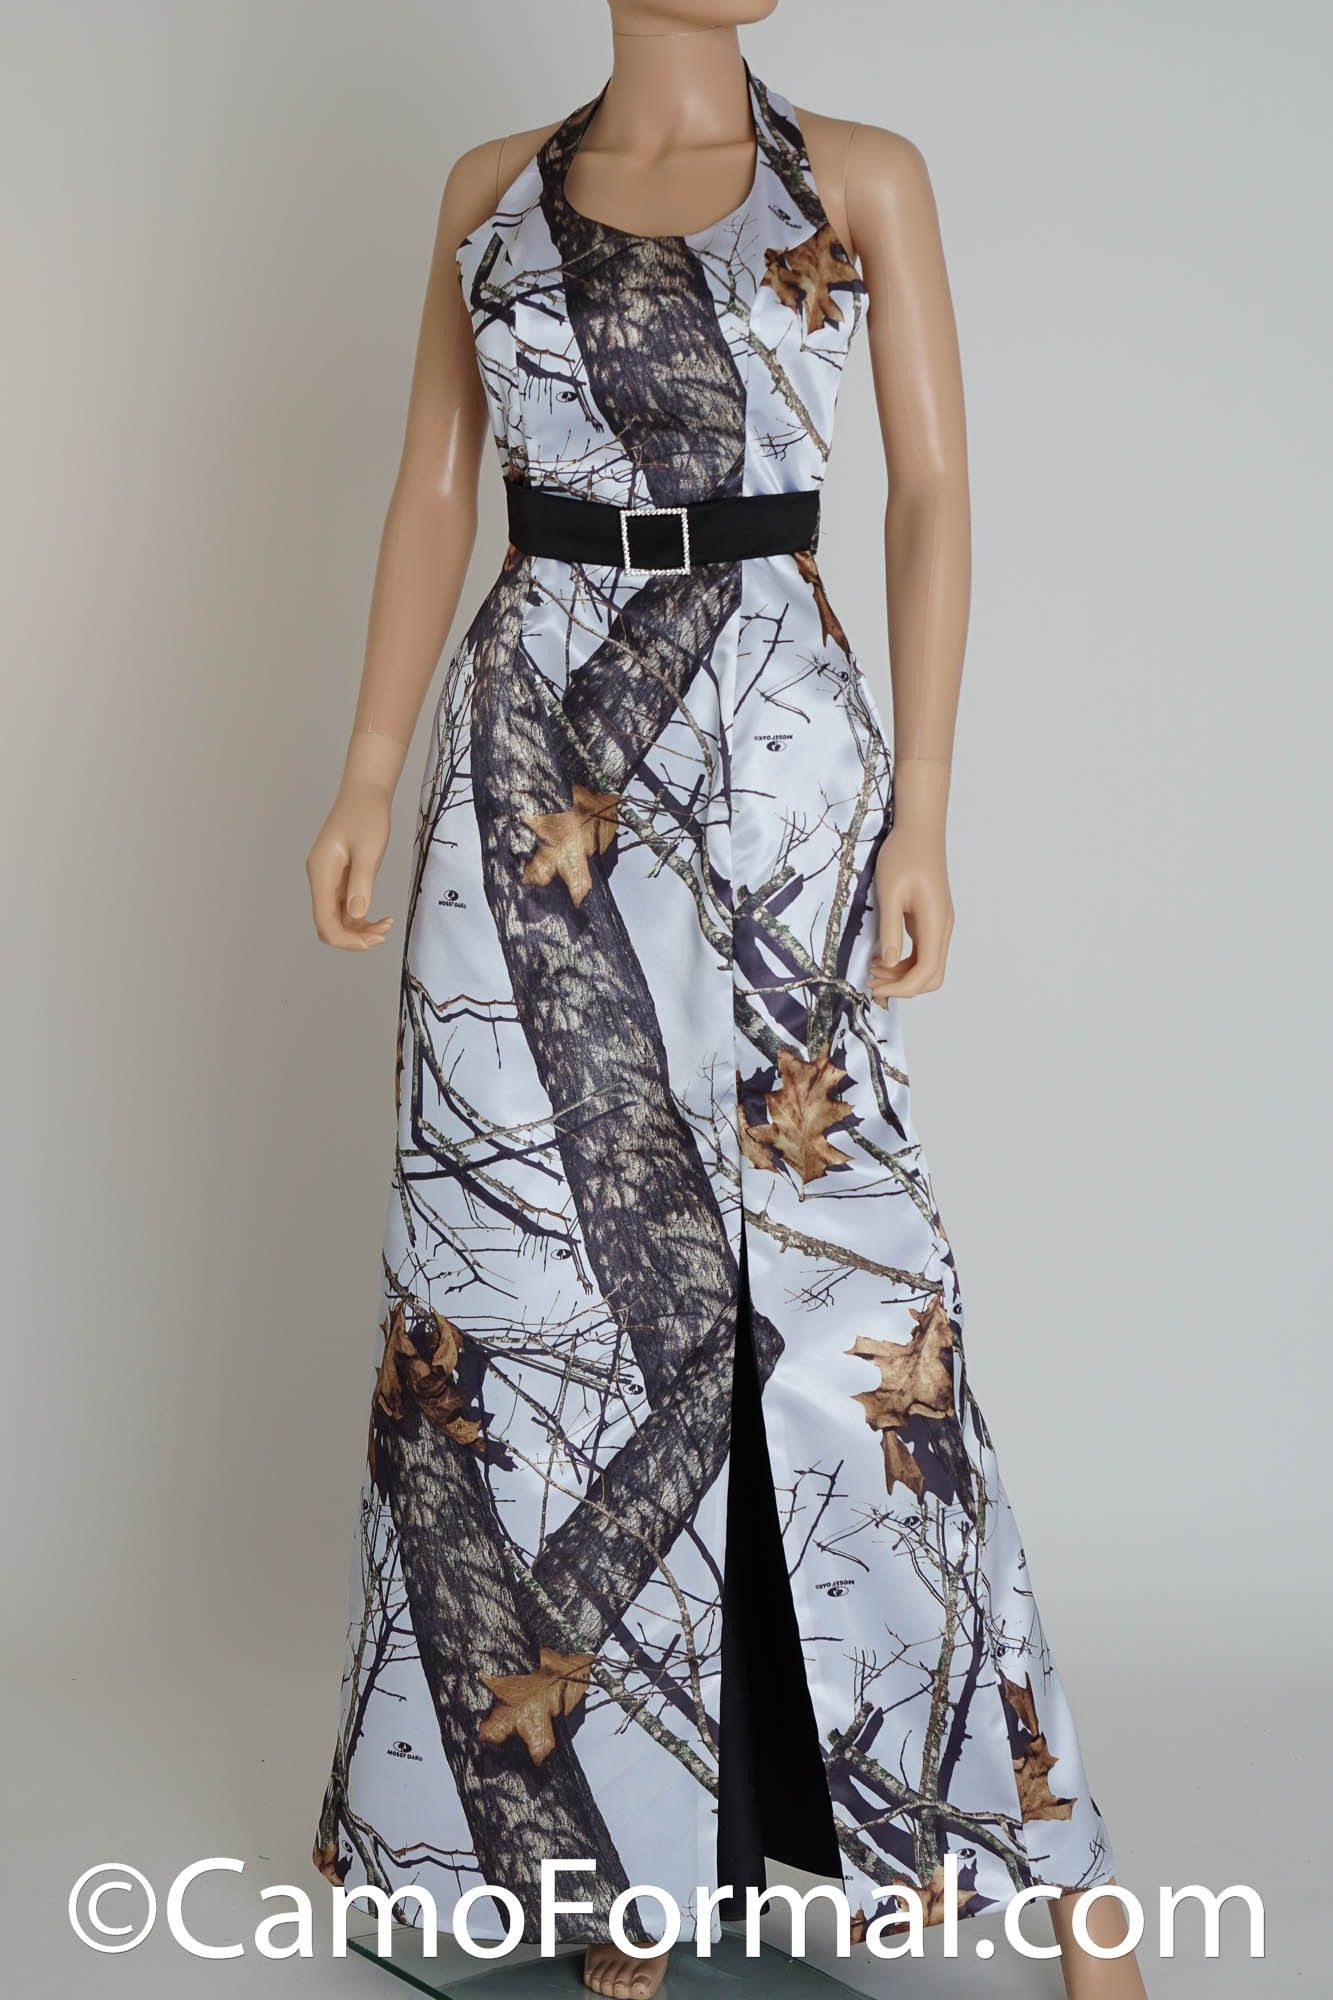 camo bridal dress with contrast belt and chapel train winter